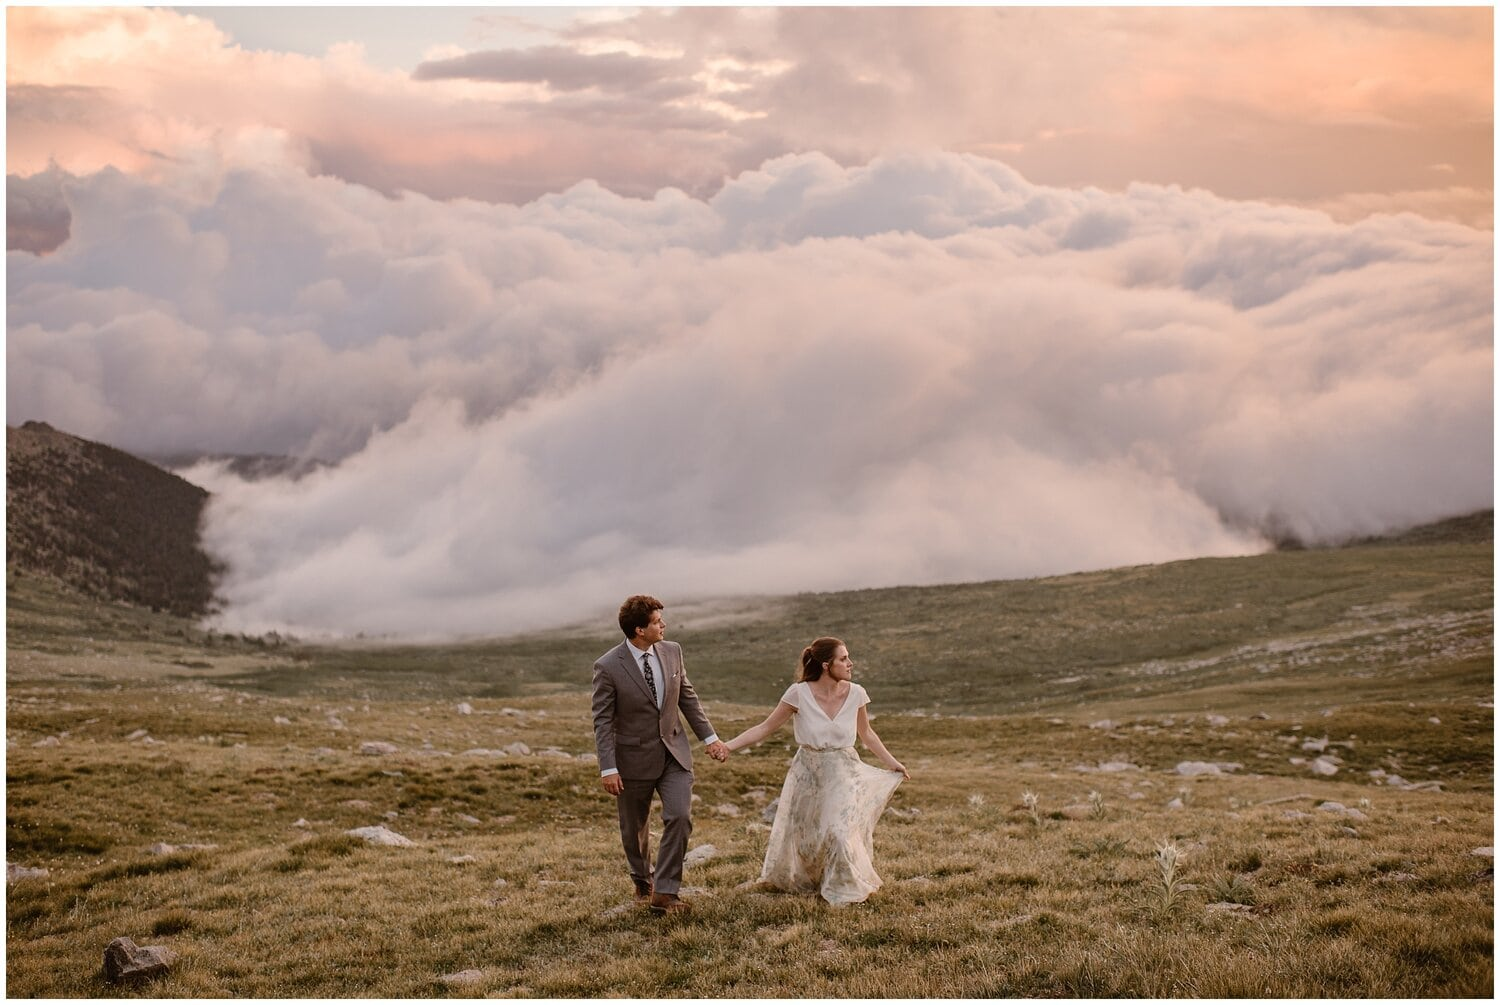 A bride and groom walk through a meadow on their wedding day with a cloud inversion behind them.